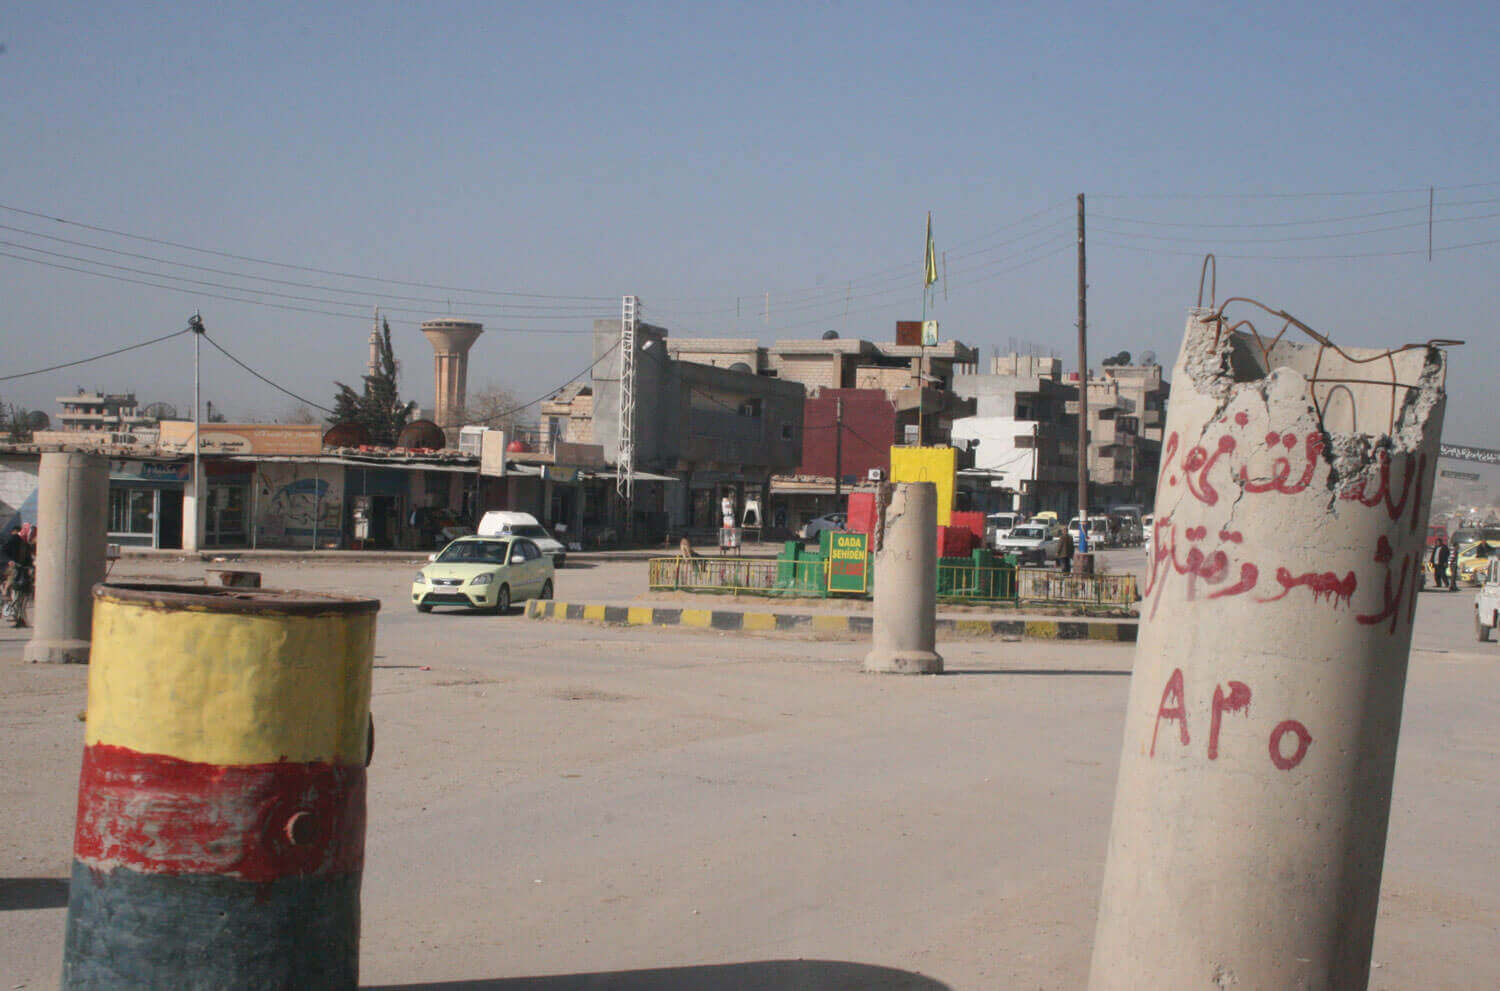 Qamishli (kurd.: Qamişlo) the largest Syrian-Kurdish town with symbols of the Kurdish self-administration